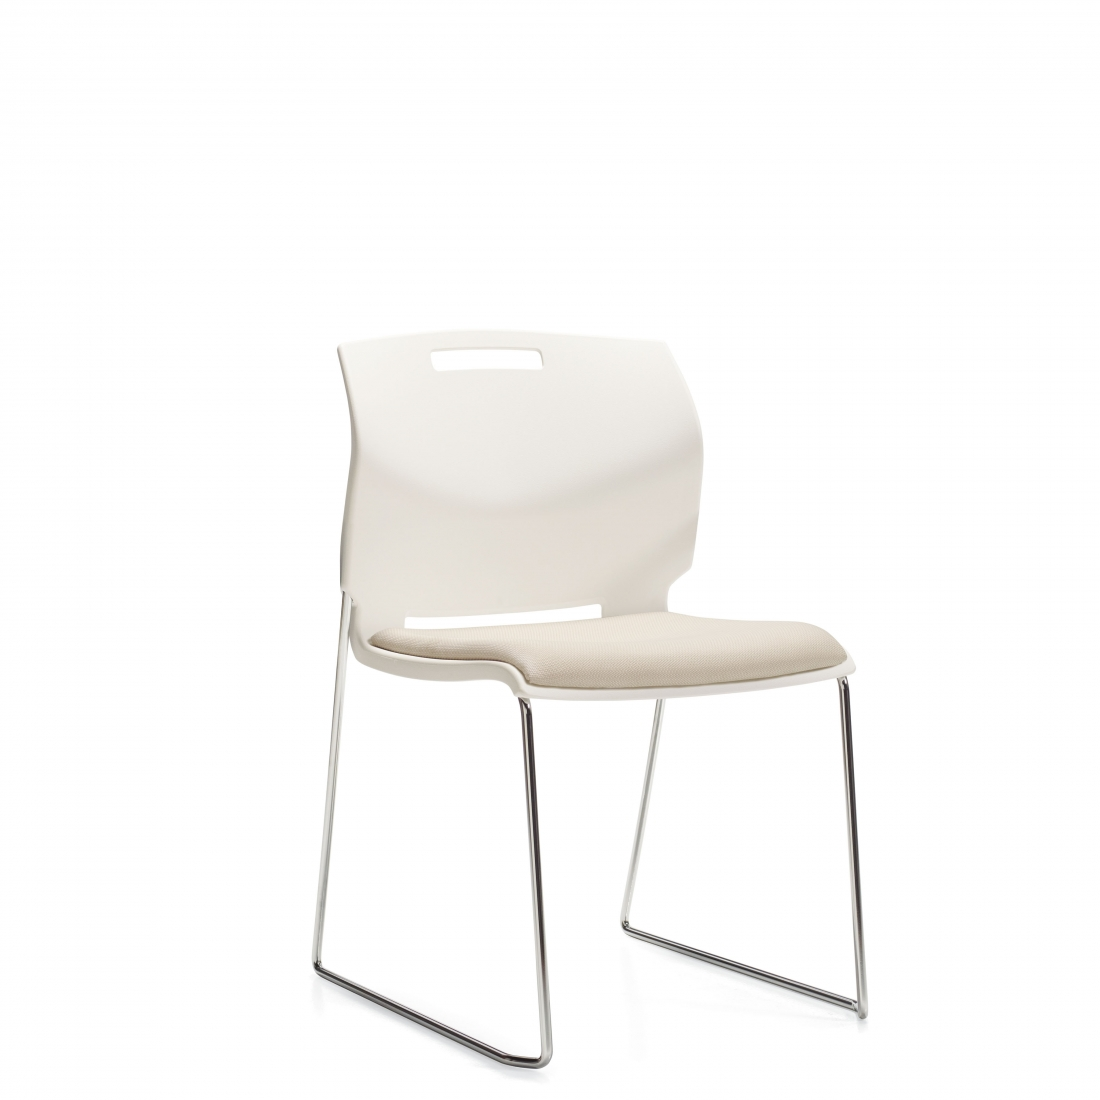 Popcorn Side Chair with Padded Seat IN cloud